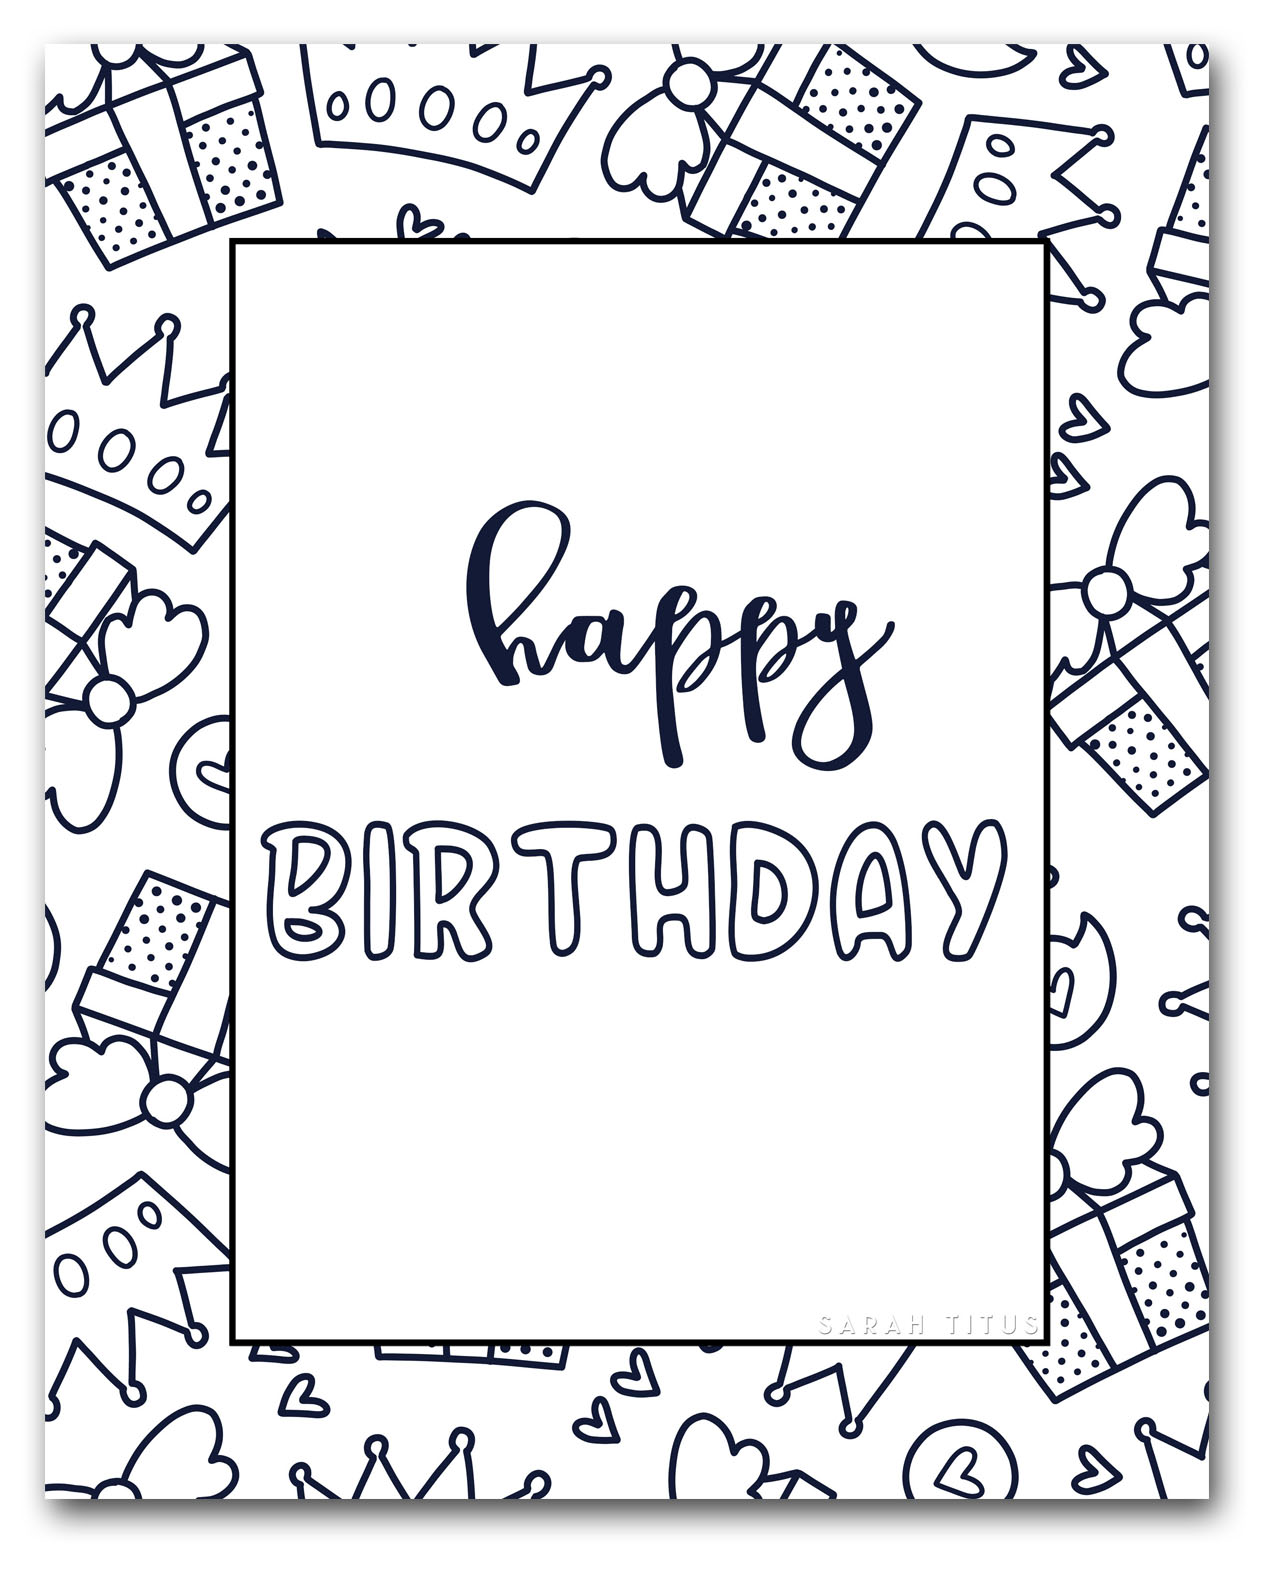 happy birthday alexis coloring pages - photo#42